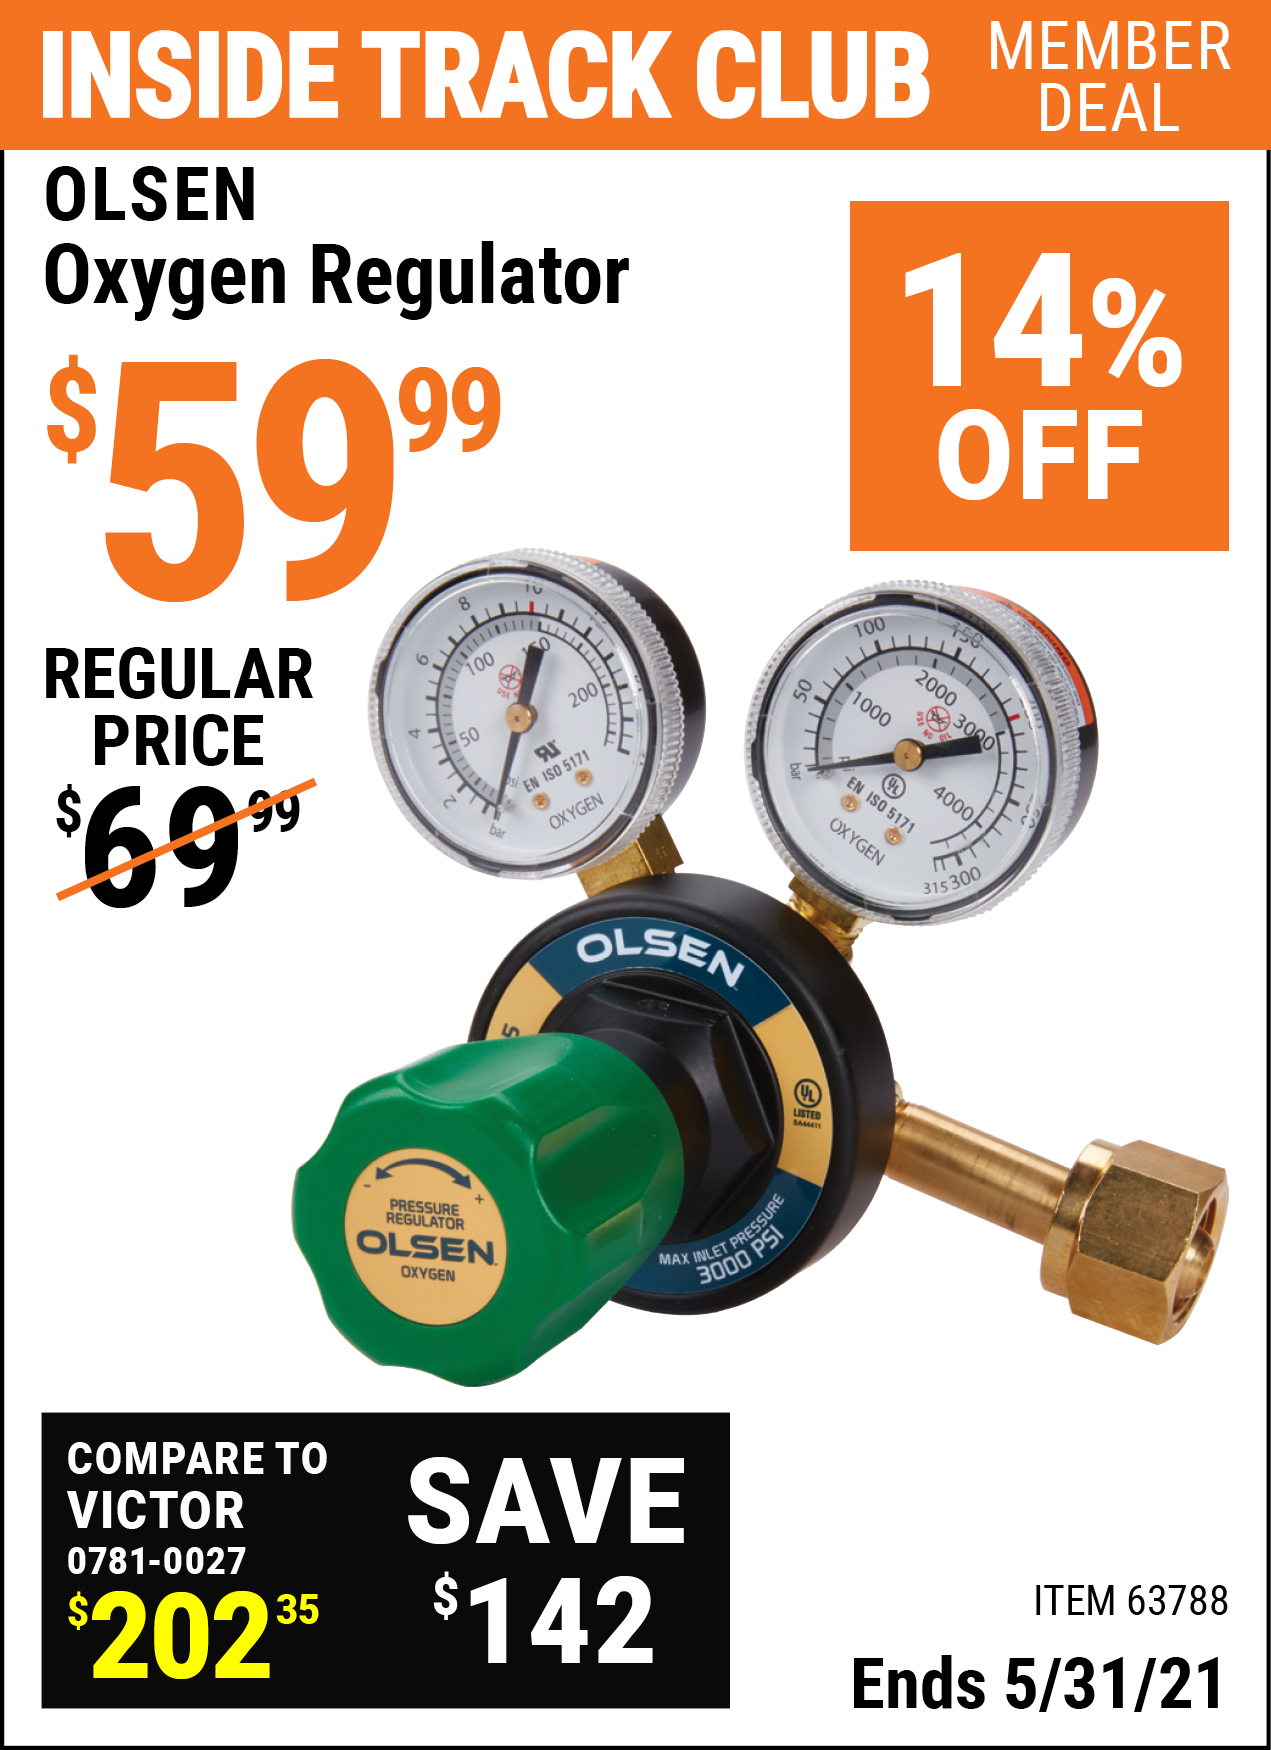 Inside Track Club members can buy the OLSEN Oxygen Regulator (Item 63788) for $59.99, valid through 5/31/2021.